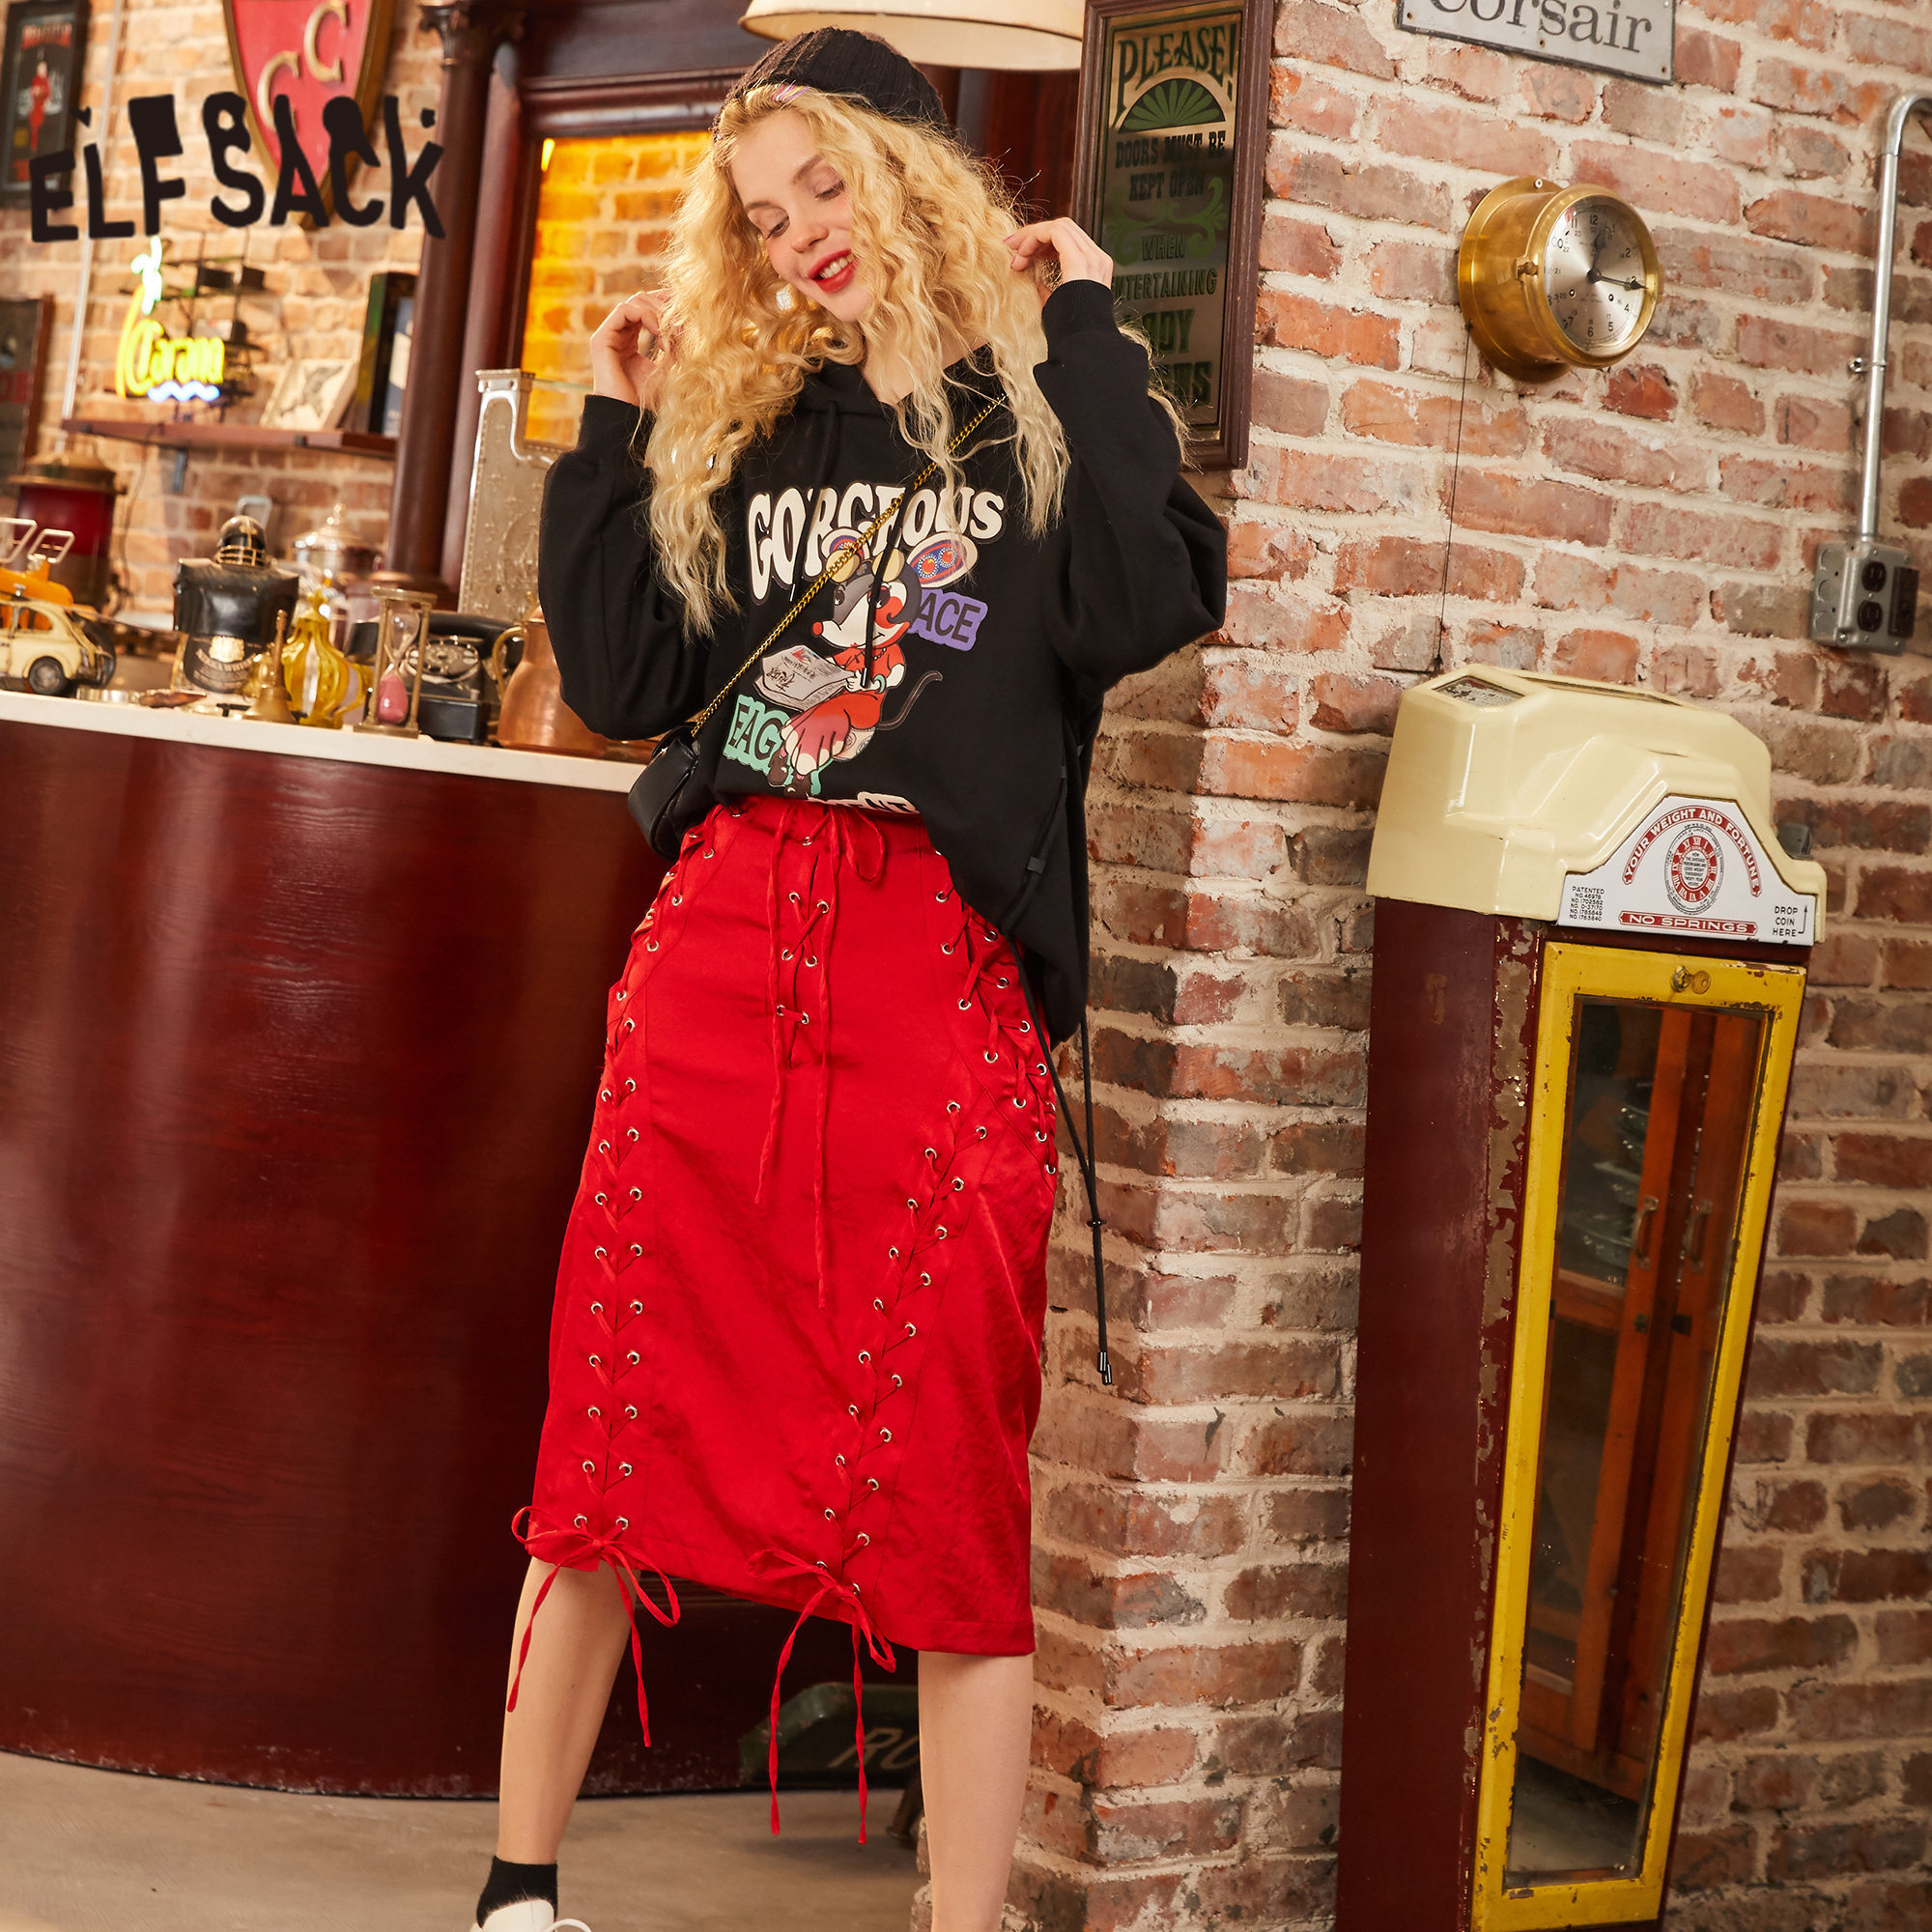 ELFSACK Red Solid Lace Up Empire Waist Satin Casual Skirt Women 2020 Spring New Drawstring Ladies Knee Length Daily Skirts